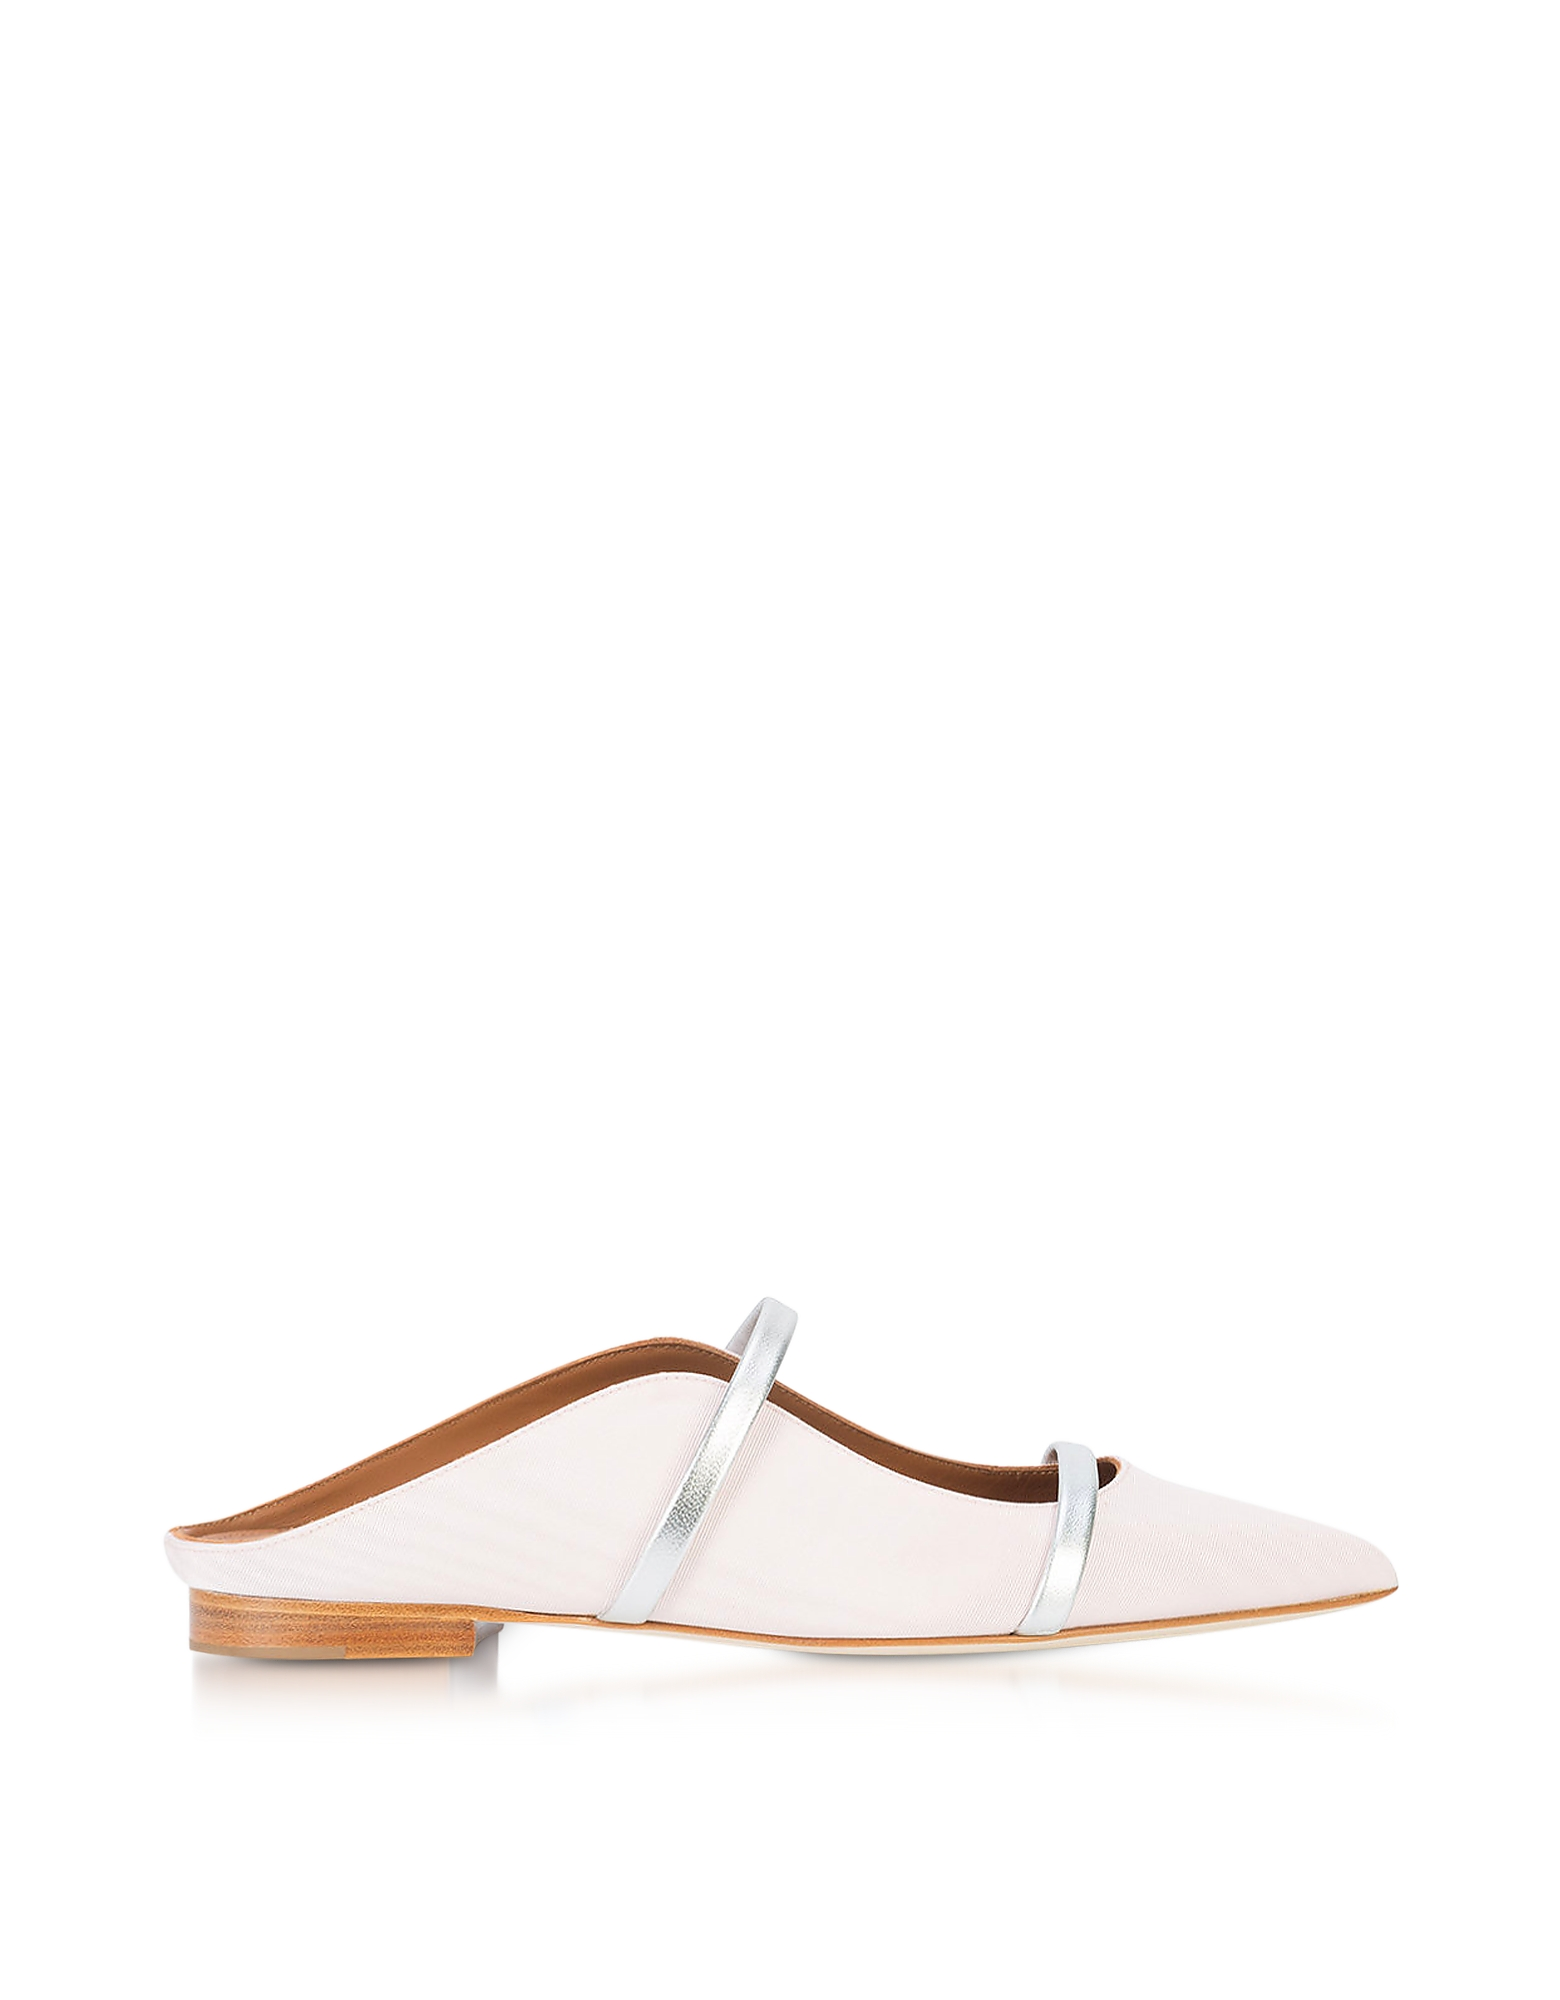 Malone Souliers Shoes, Maureen Rose Moire Fabric and Silver Metallic Nappa Leather Flat Mules